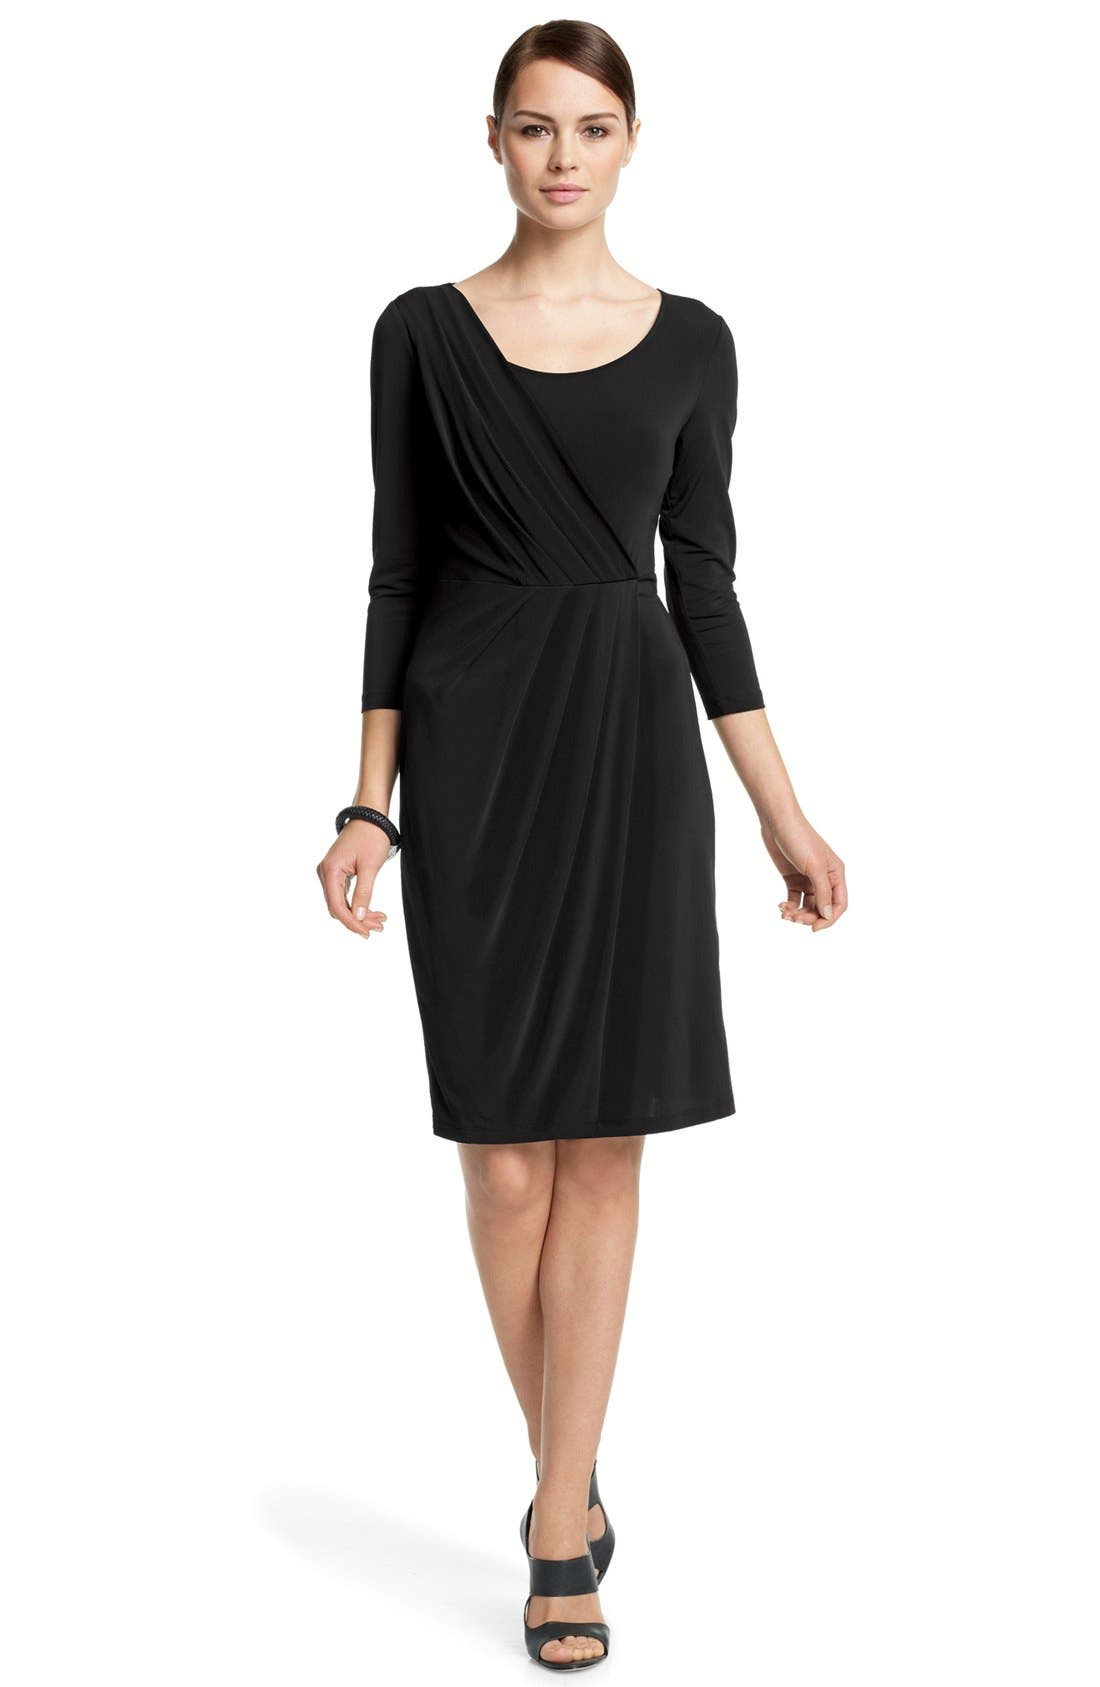 Alternate Image 1 Selected - Lafayette 148 New York Layered Pleat Dress